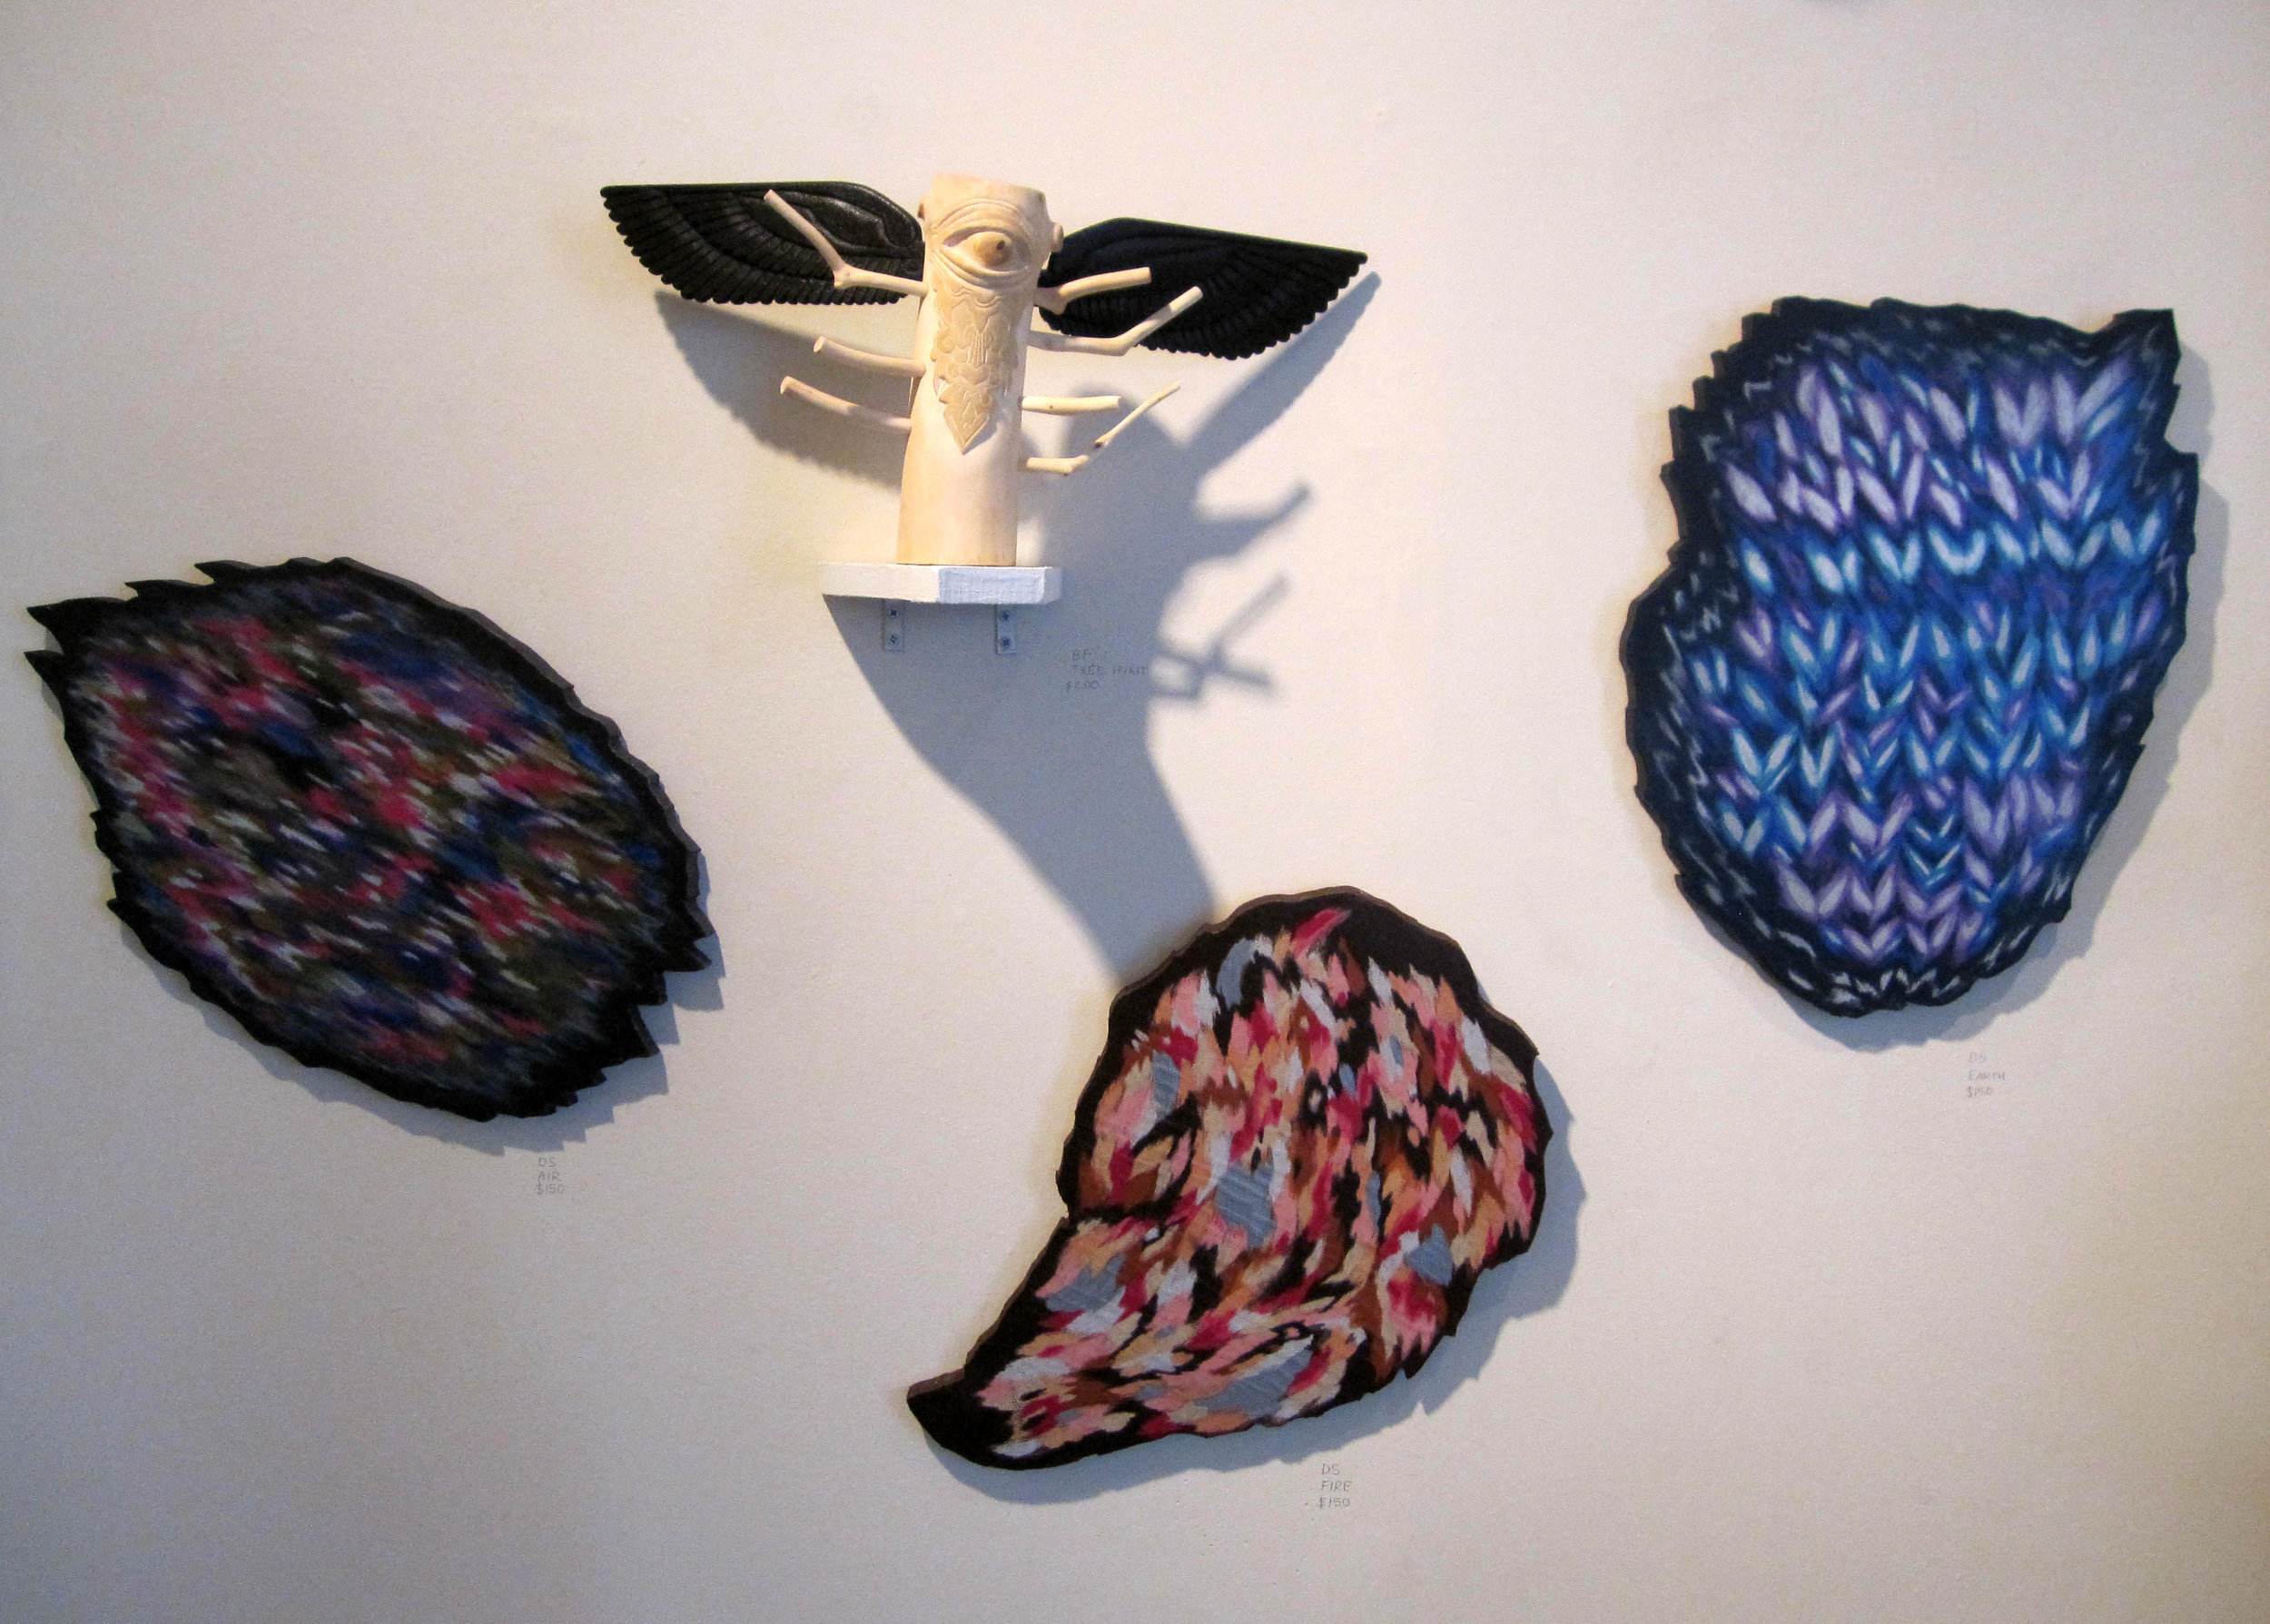 Hand carved wood sculpture by Becky Furey  Three drawings mounted on cut MDF by Dorothy Stucki